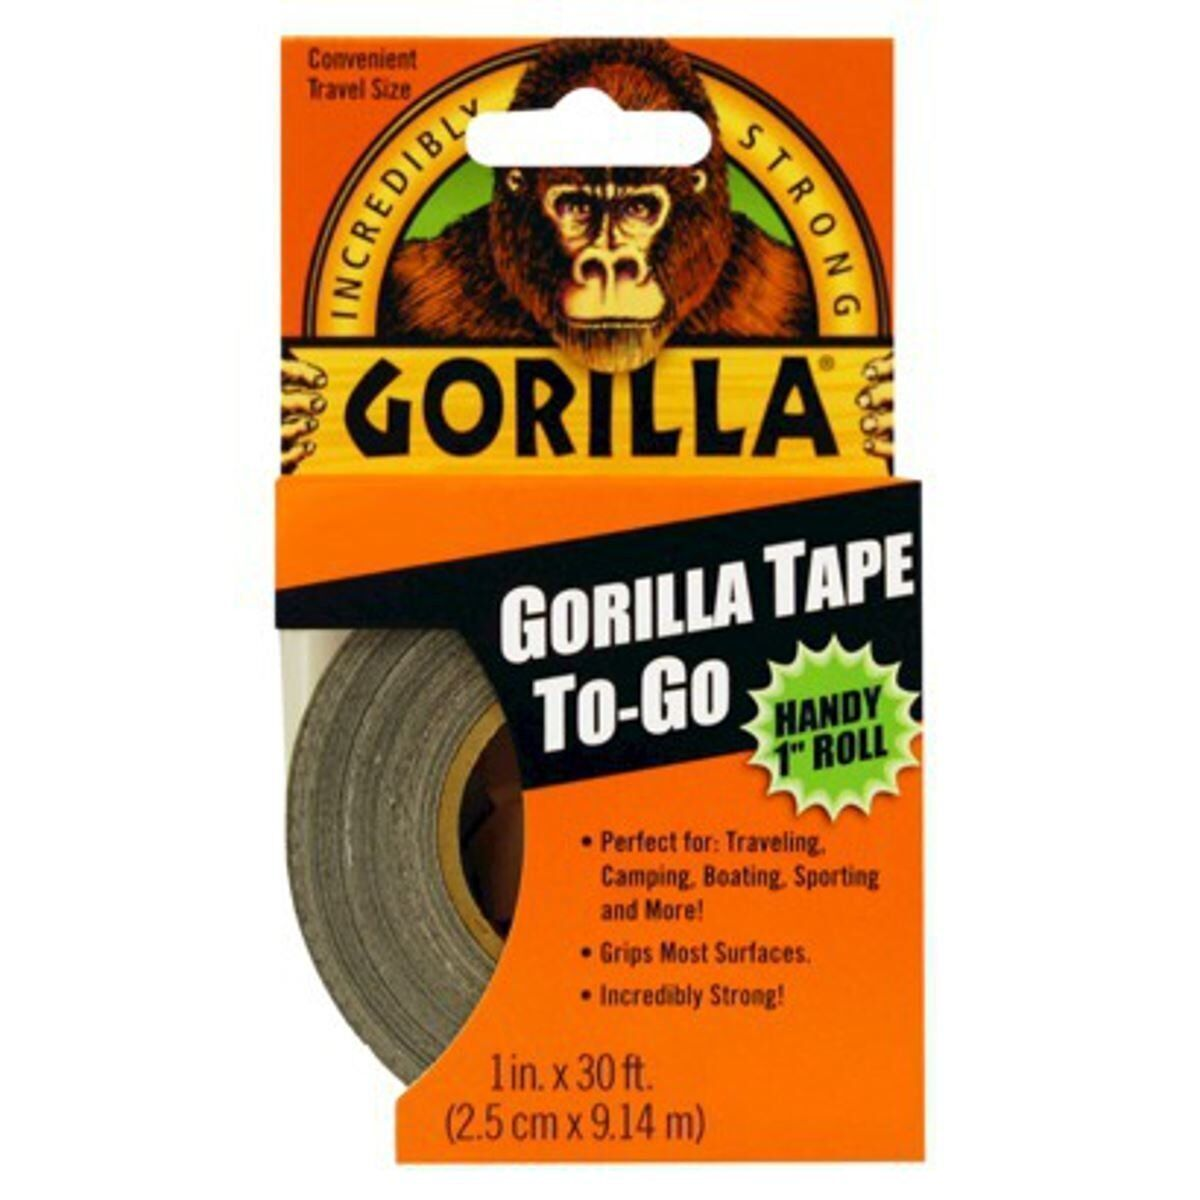 12 x Gorilla Glue Tape Handy Roll 1  wide x 9M Tape to Go Strong Duct tape